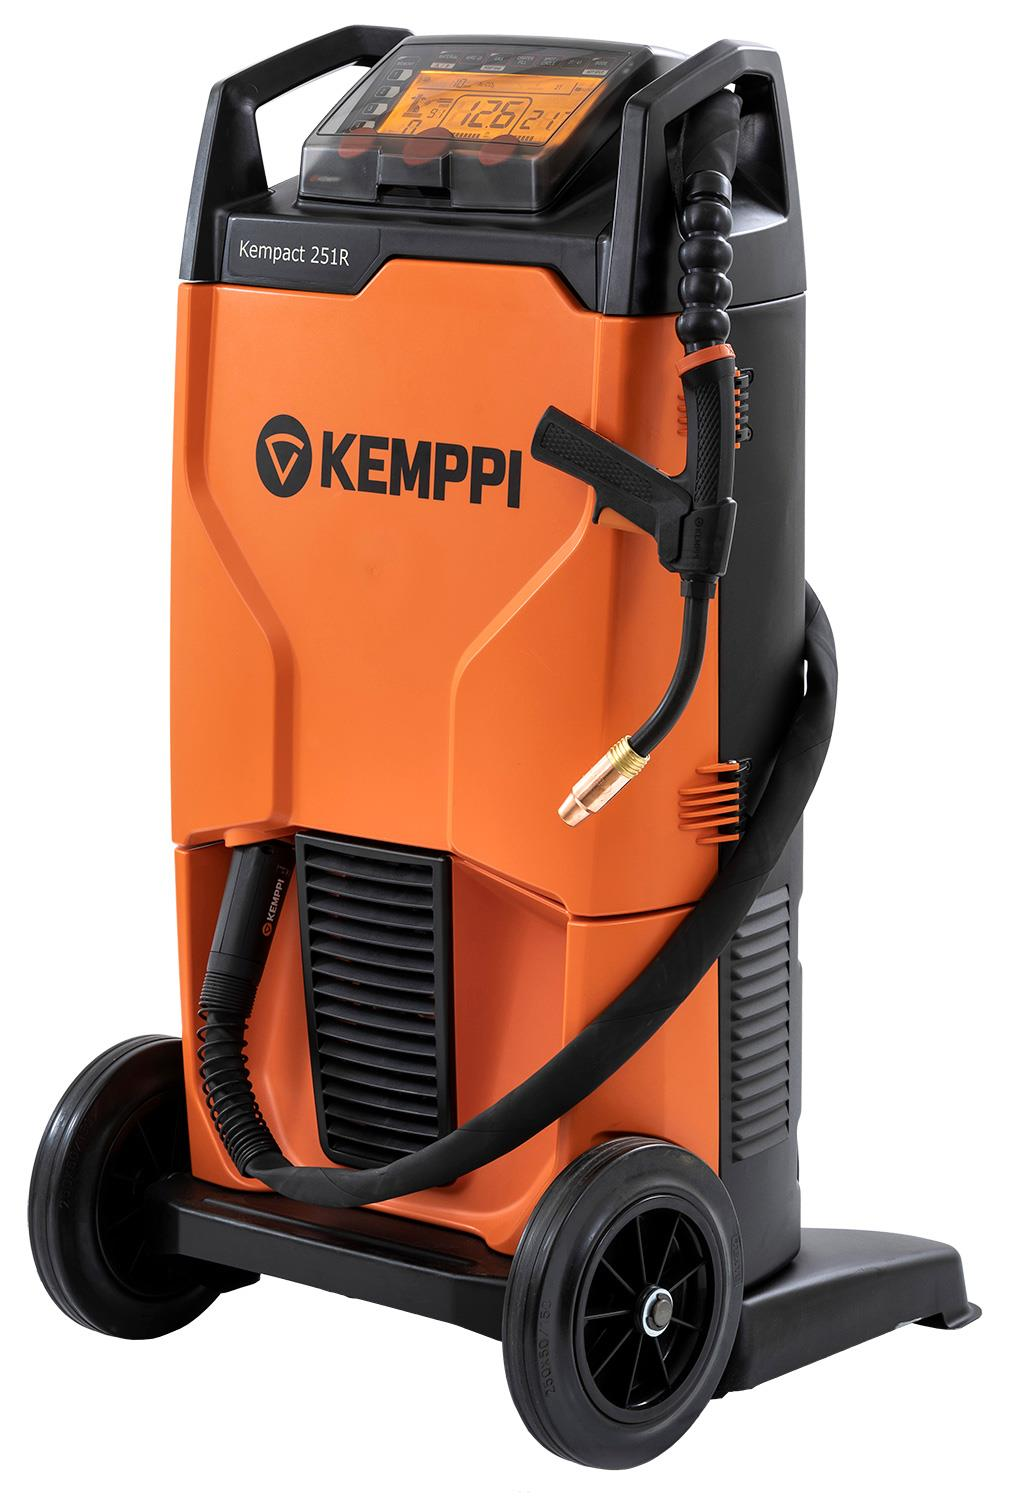 KempactRA-251R  Kemppi Kempact RA 251R, 250A 230v Mig Welder, with FE25 Torch